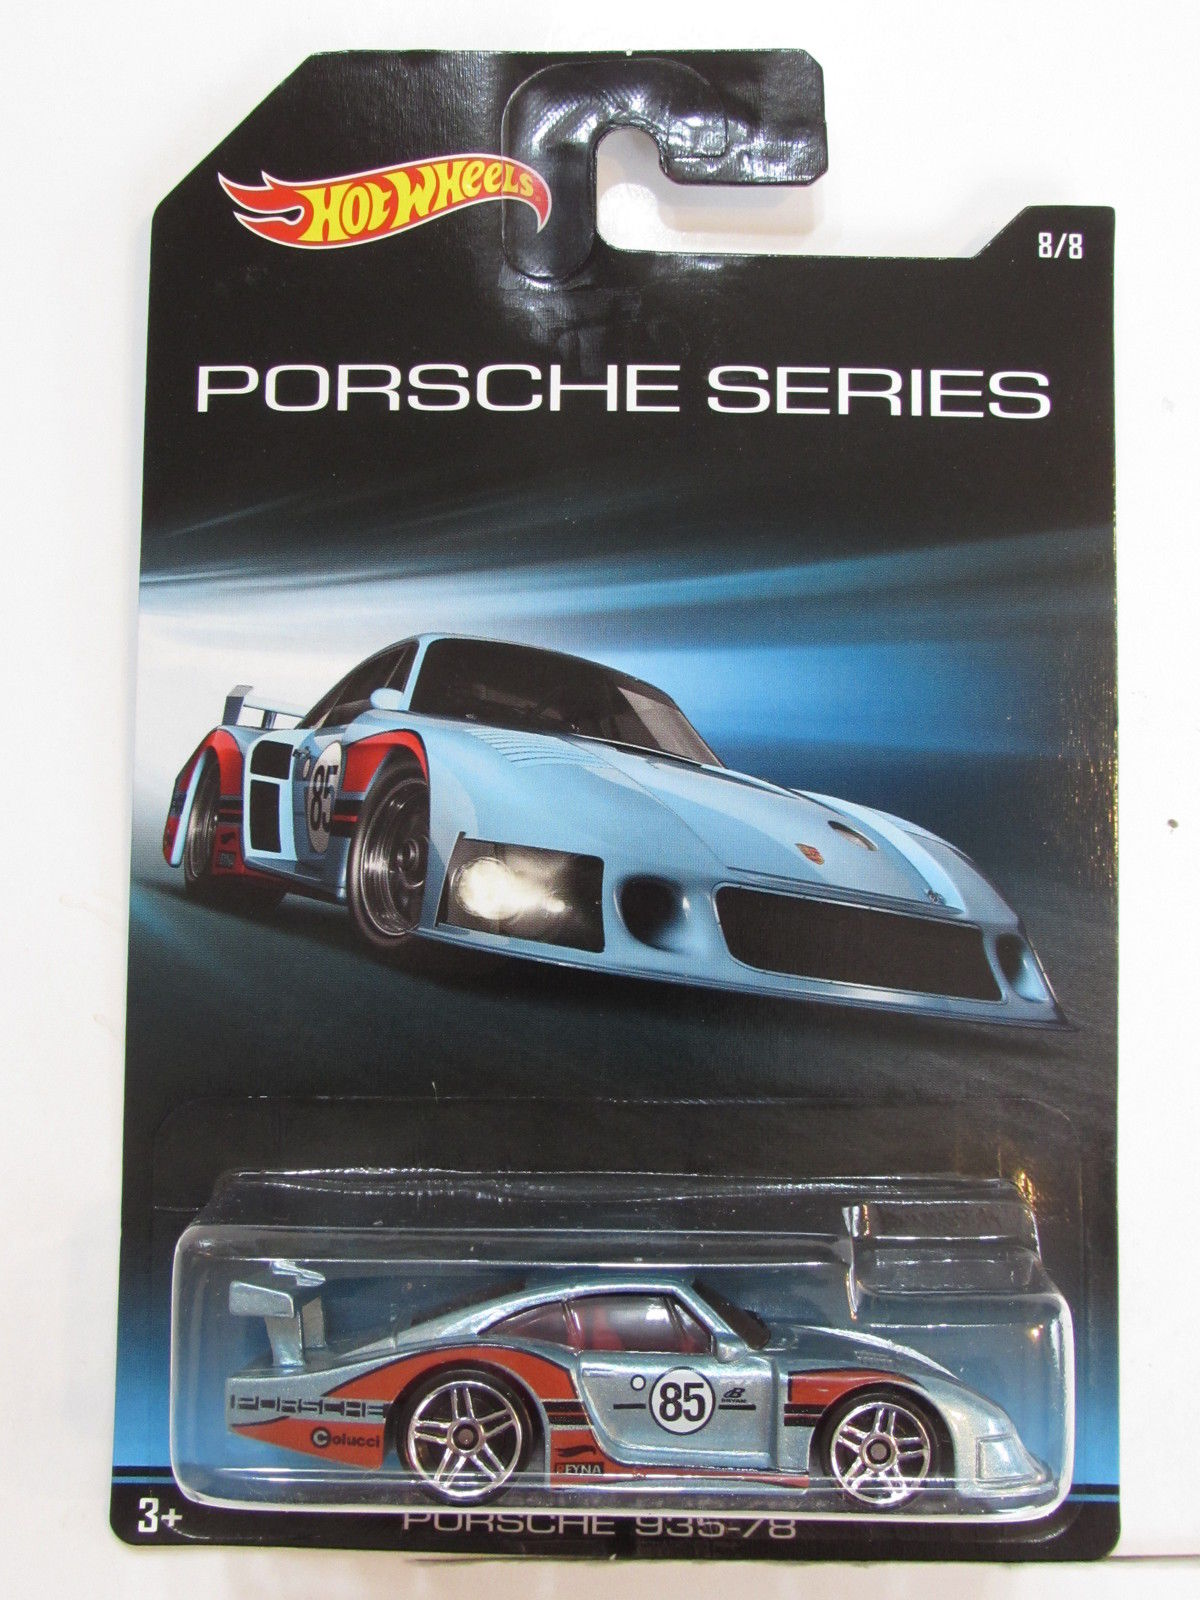 HOT WHEELS 2015 PORSCHE SERIES - PORSCHE 935 - 78